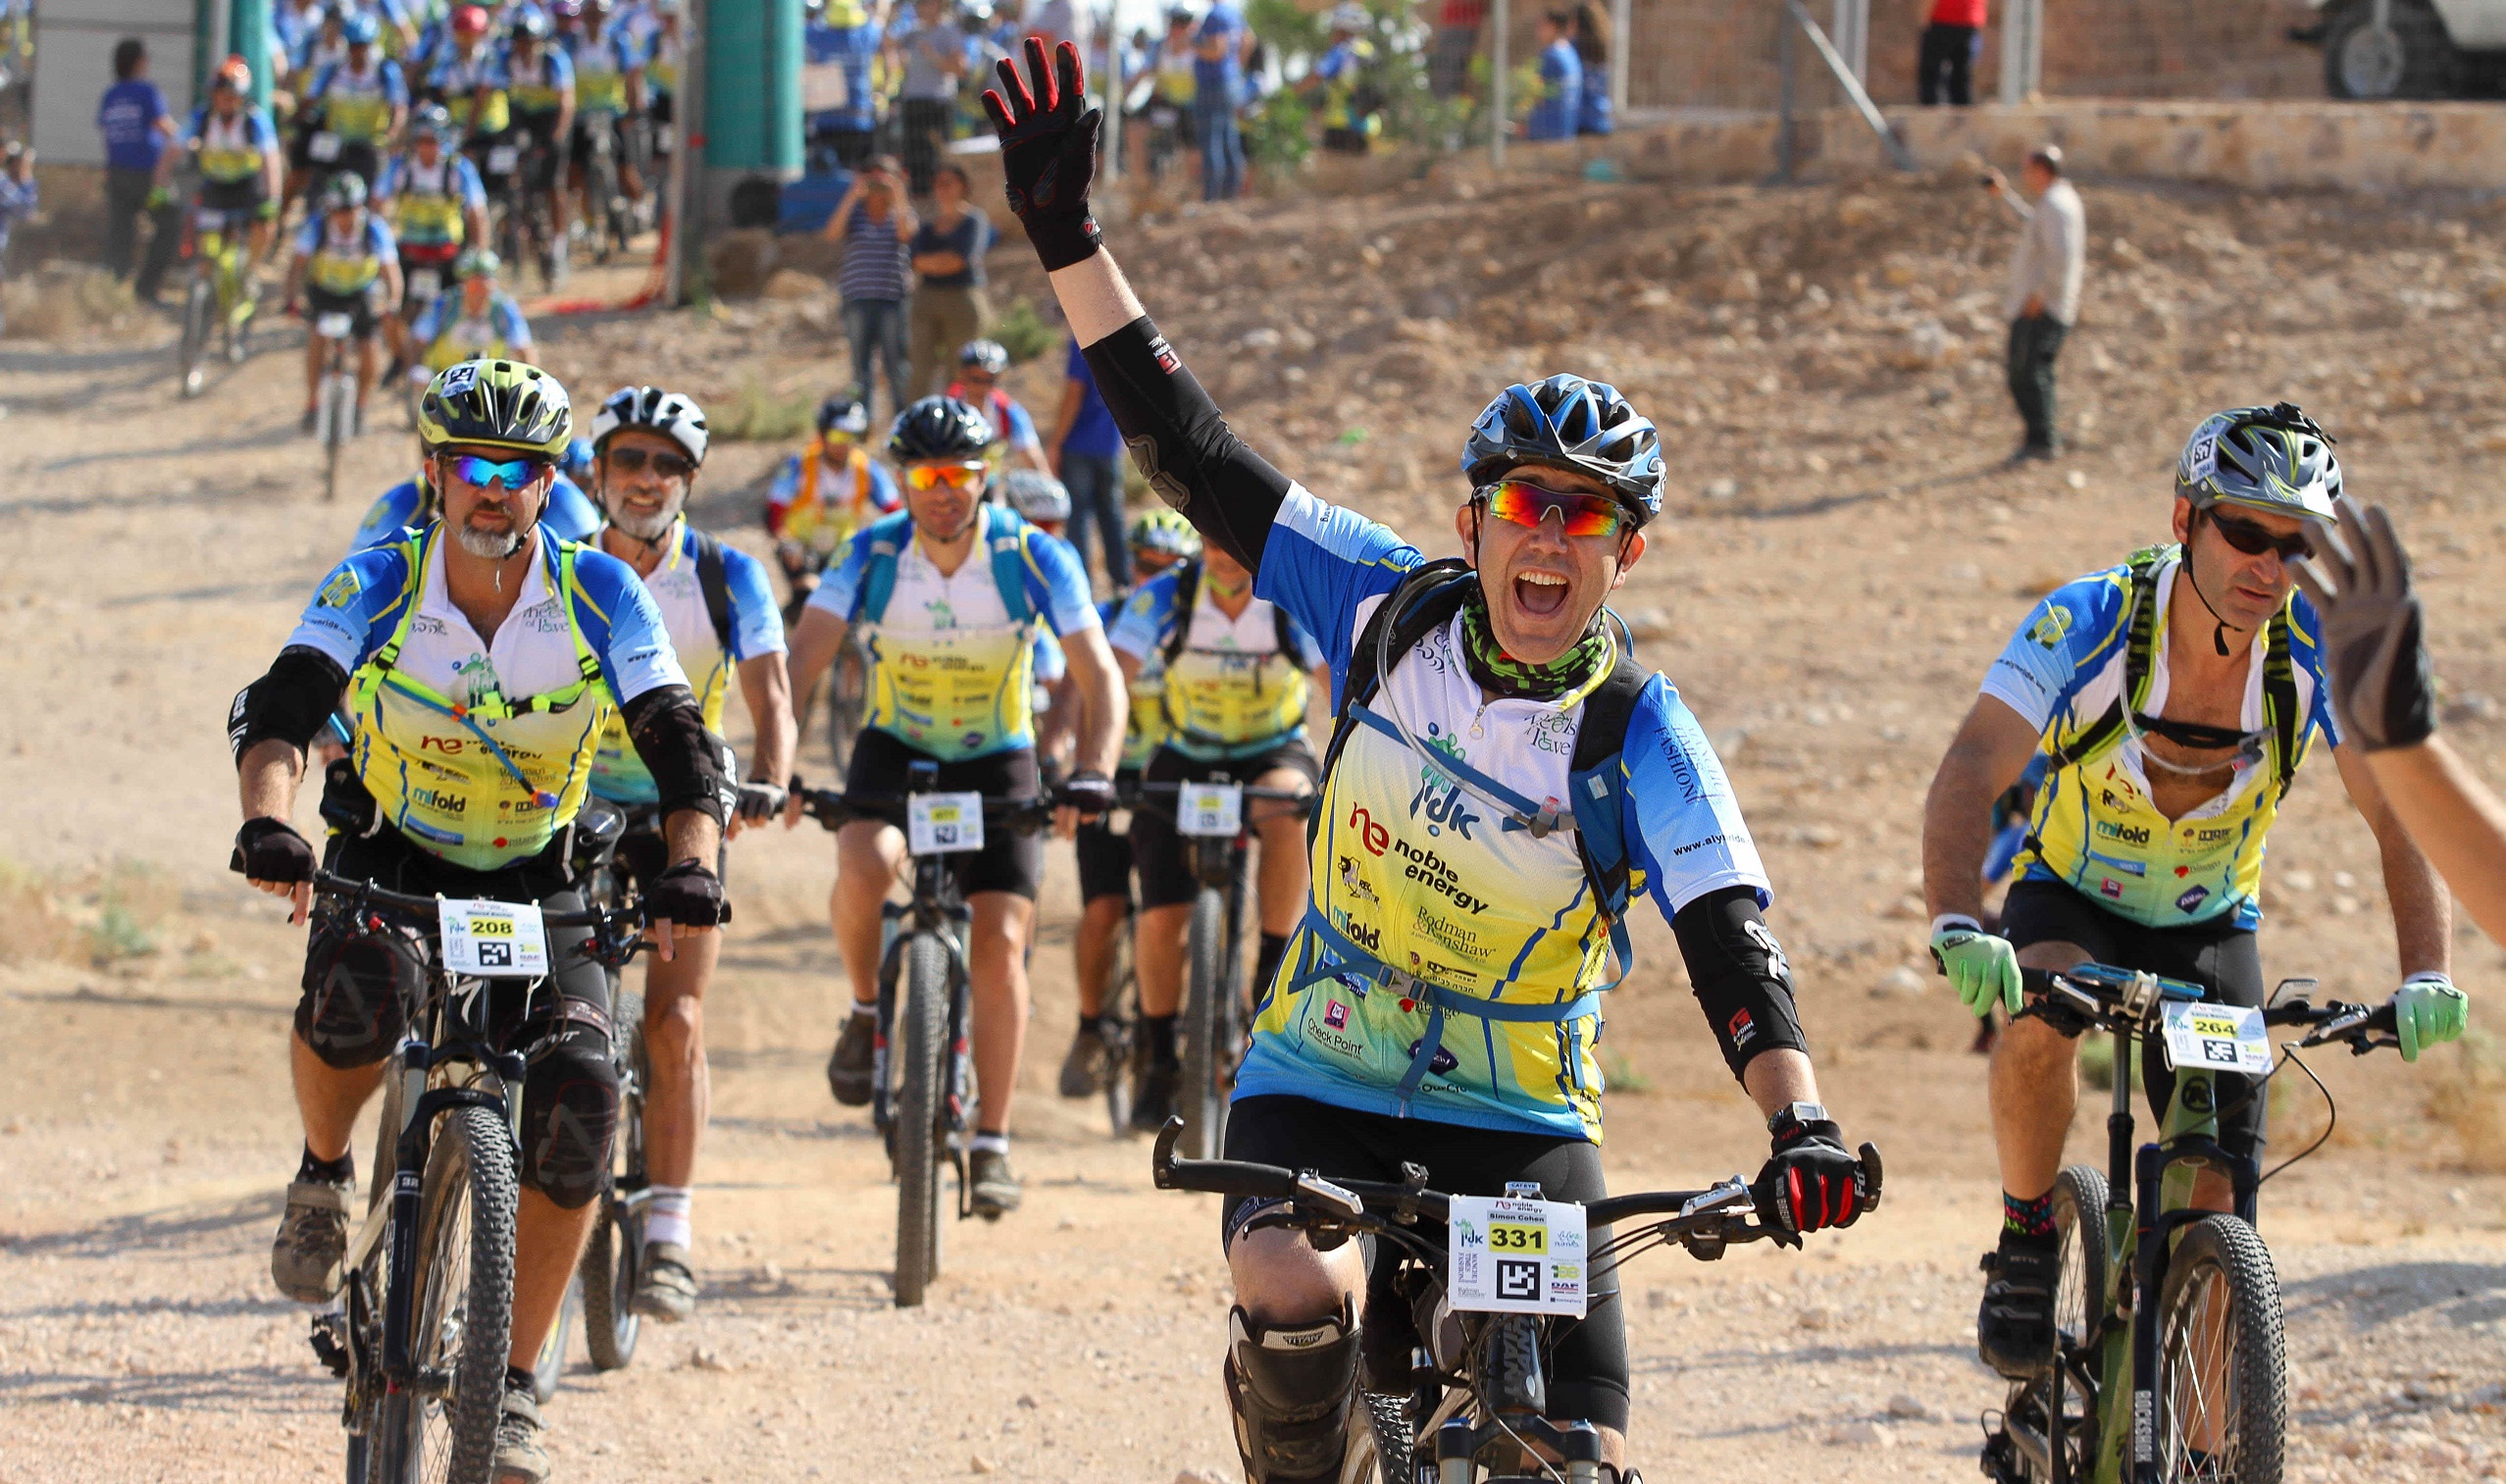 2019 ALYN Wheels of Love: Israel Charity Bike Event